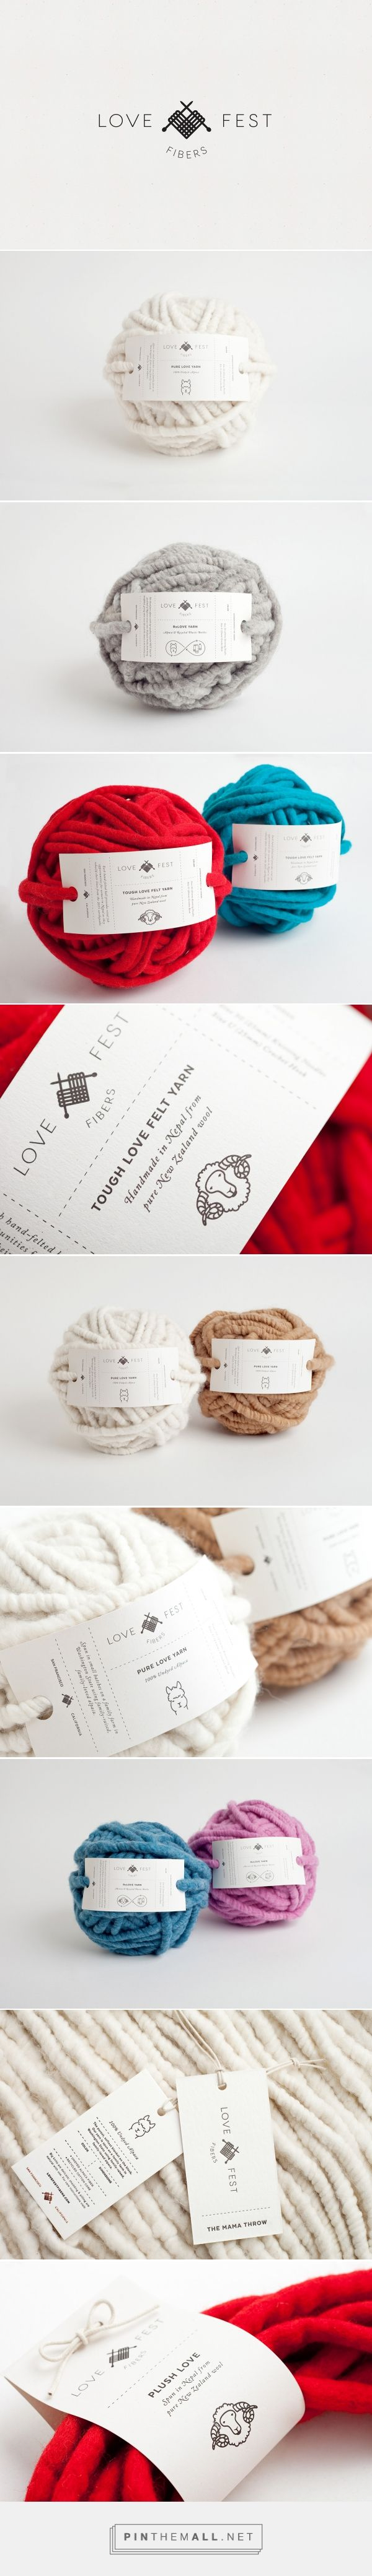 Love Fest Fibers on Behance by Menta Guadalajara, Mexico curated by Packaging Diva PD. If you are a yarn lover you'll love this simple tags and label packaging.